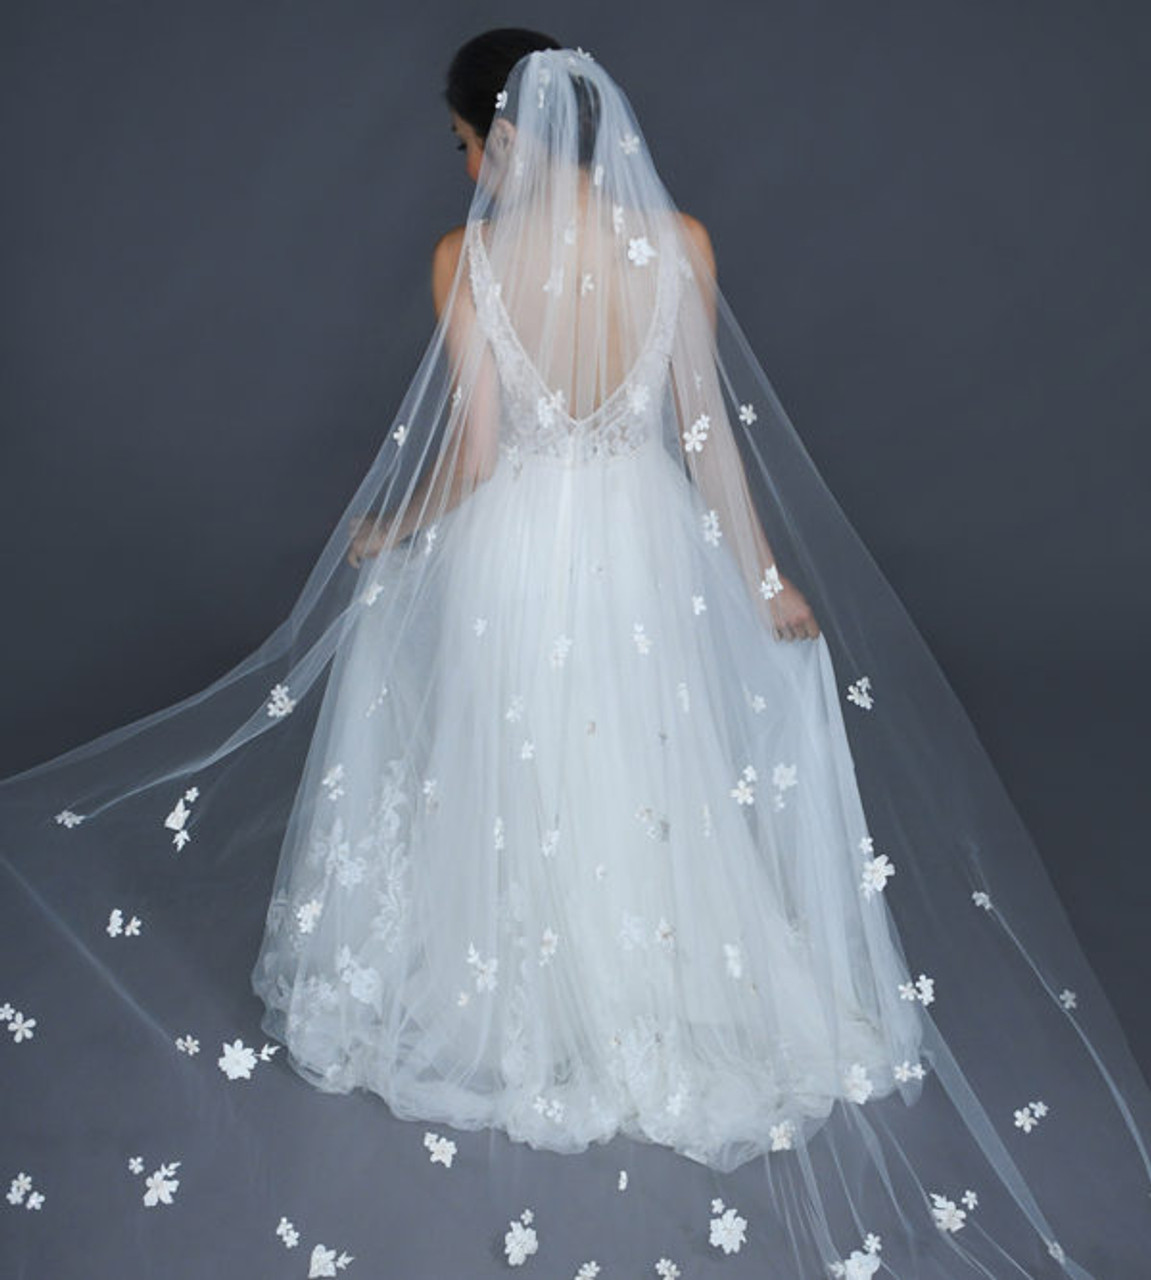 """Erica Koesler Wedding Veil 946-100 - (100"""" inches long) - Floral appliques, accented rhinestone flowers"""